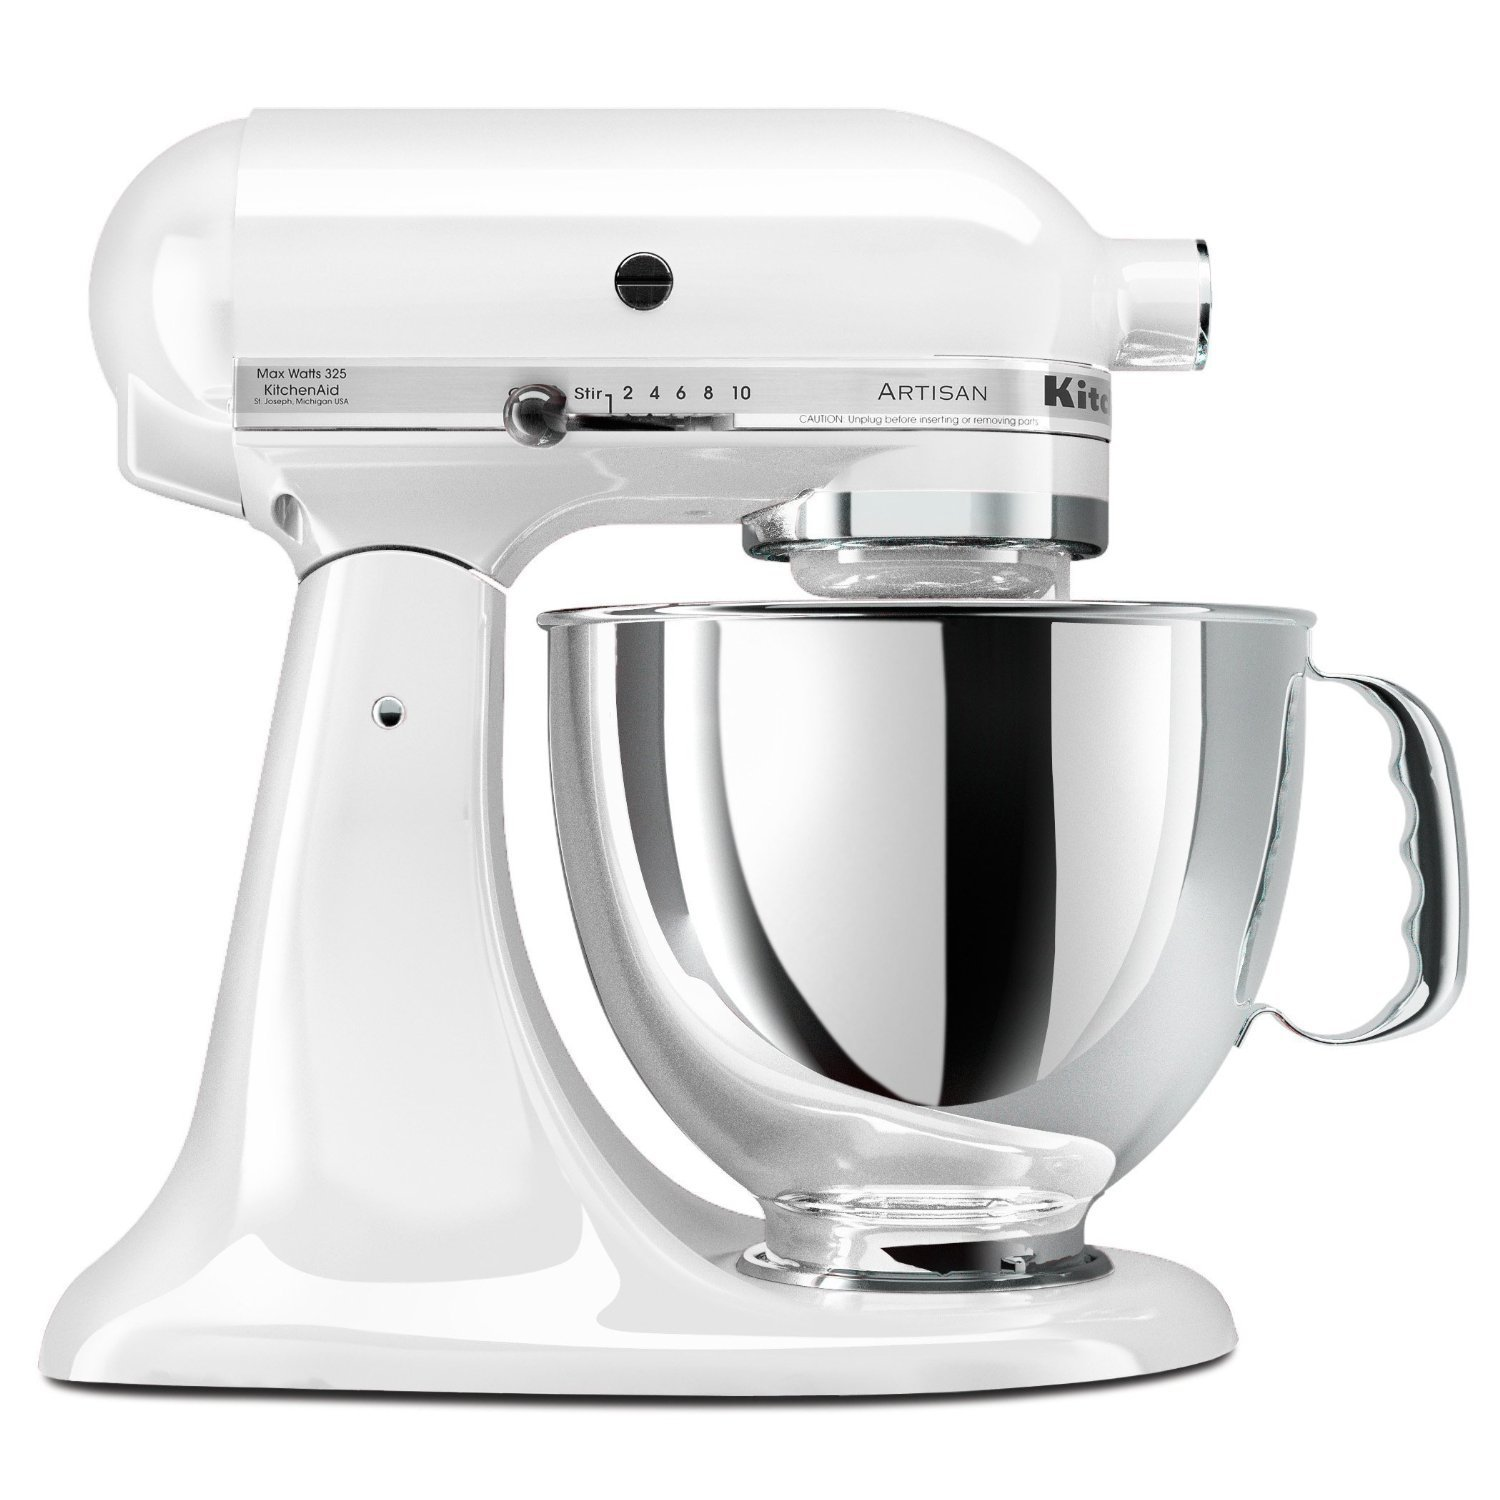 littlekitchenshop kitchenaid stand mixer artisan series 5 quart in black silver gray white. Black Bedroom Furniture Sets. Home Design Ideas